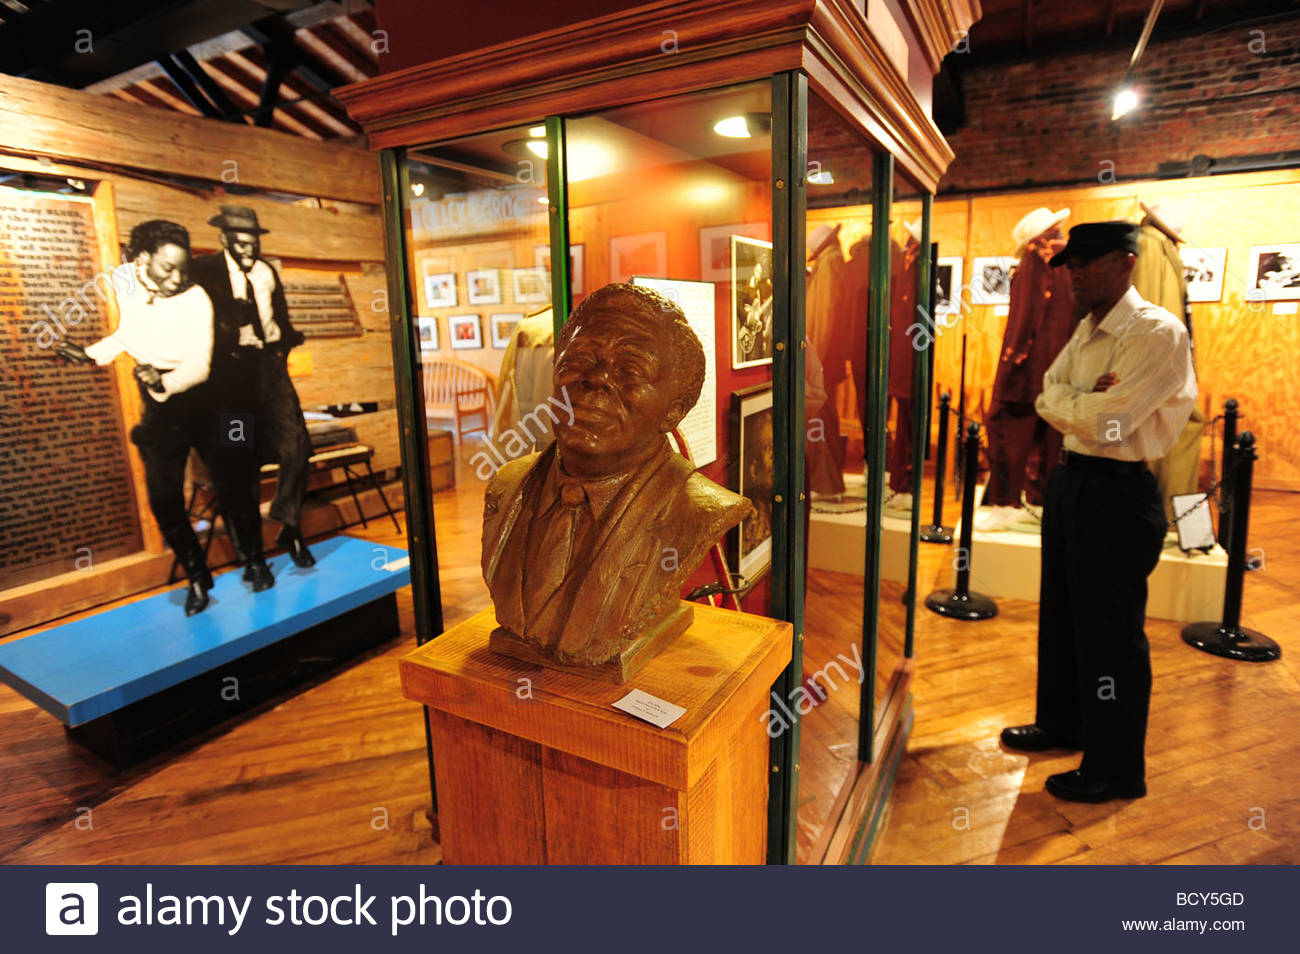 usa-mississippi-clarksdale-interior-of-t